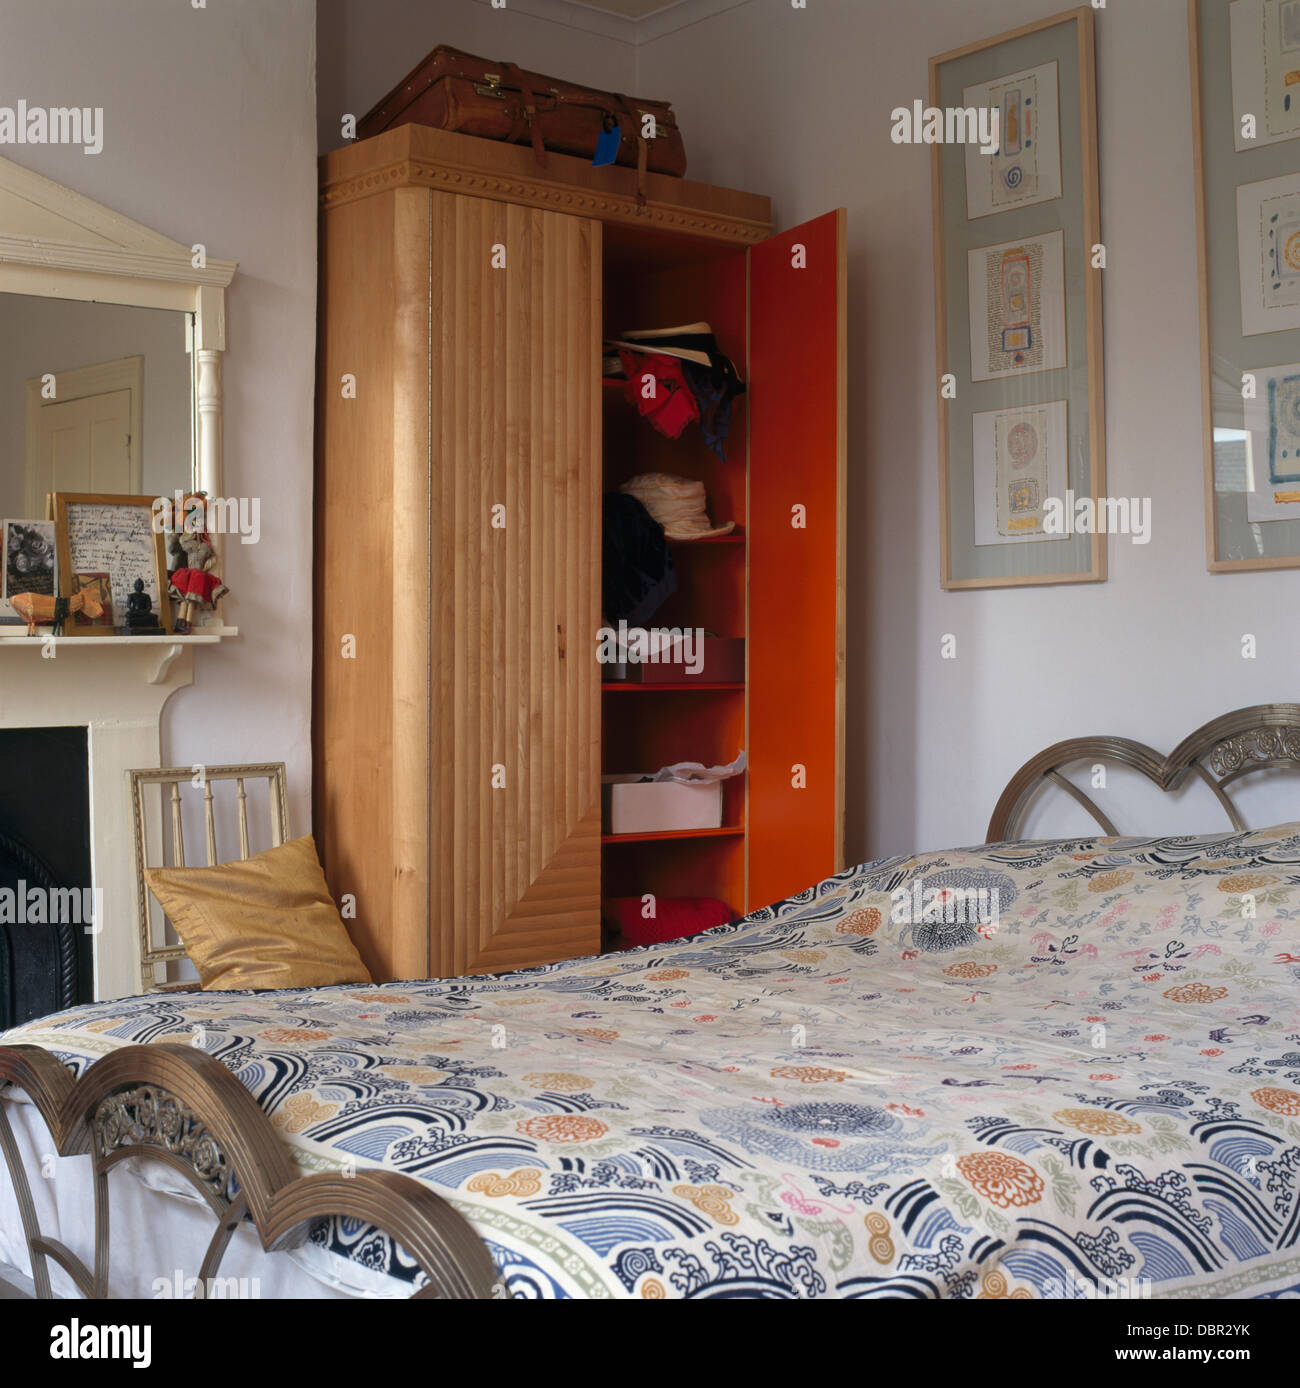 Small Bedroom Fireplaces Wardrobe In Alcove Beside Fireplace In Small Bedroom With